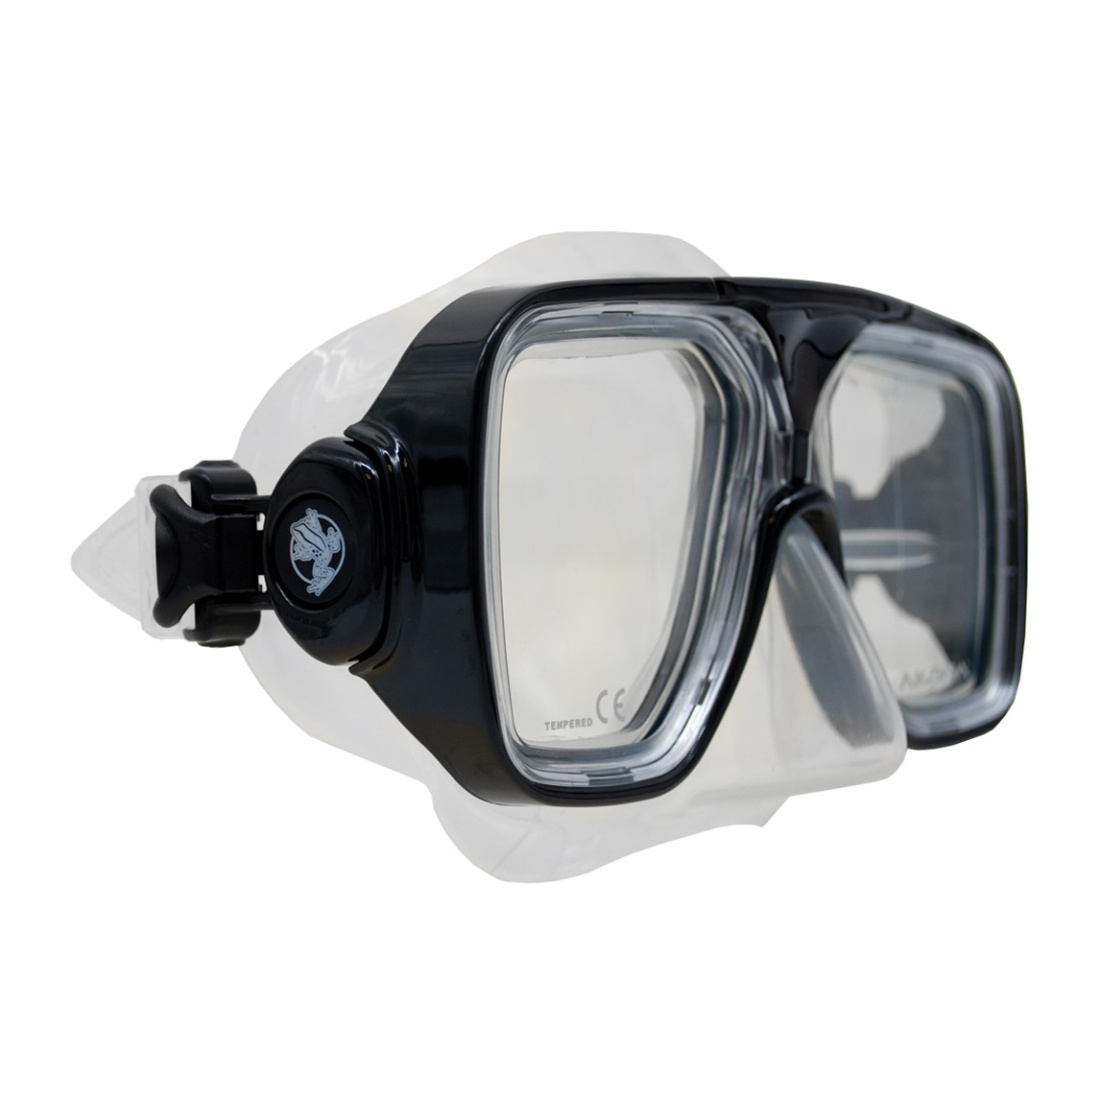 BREEZE MASK - AKM280 BK Right